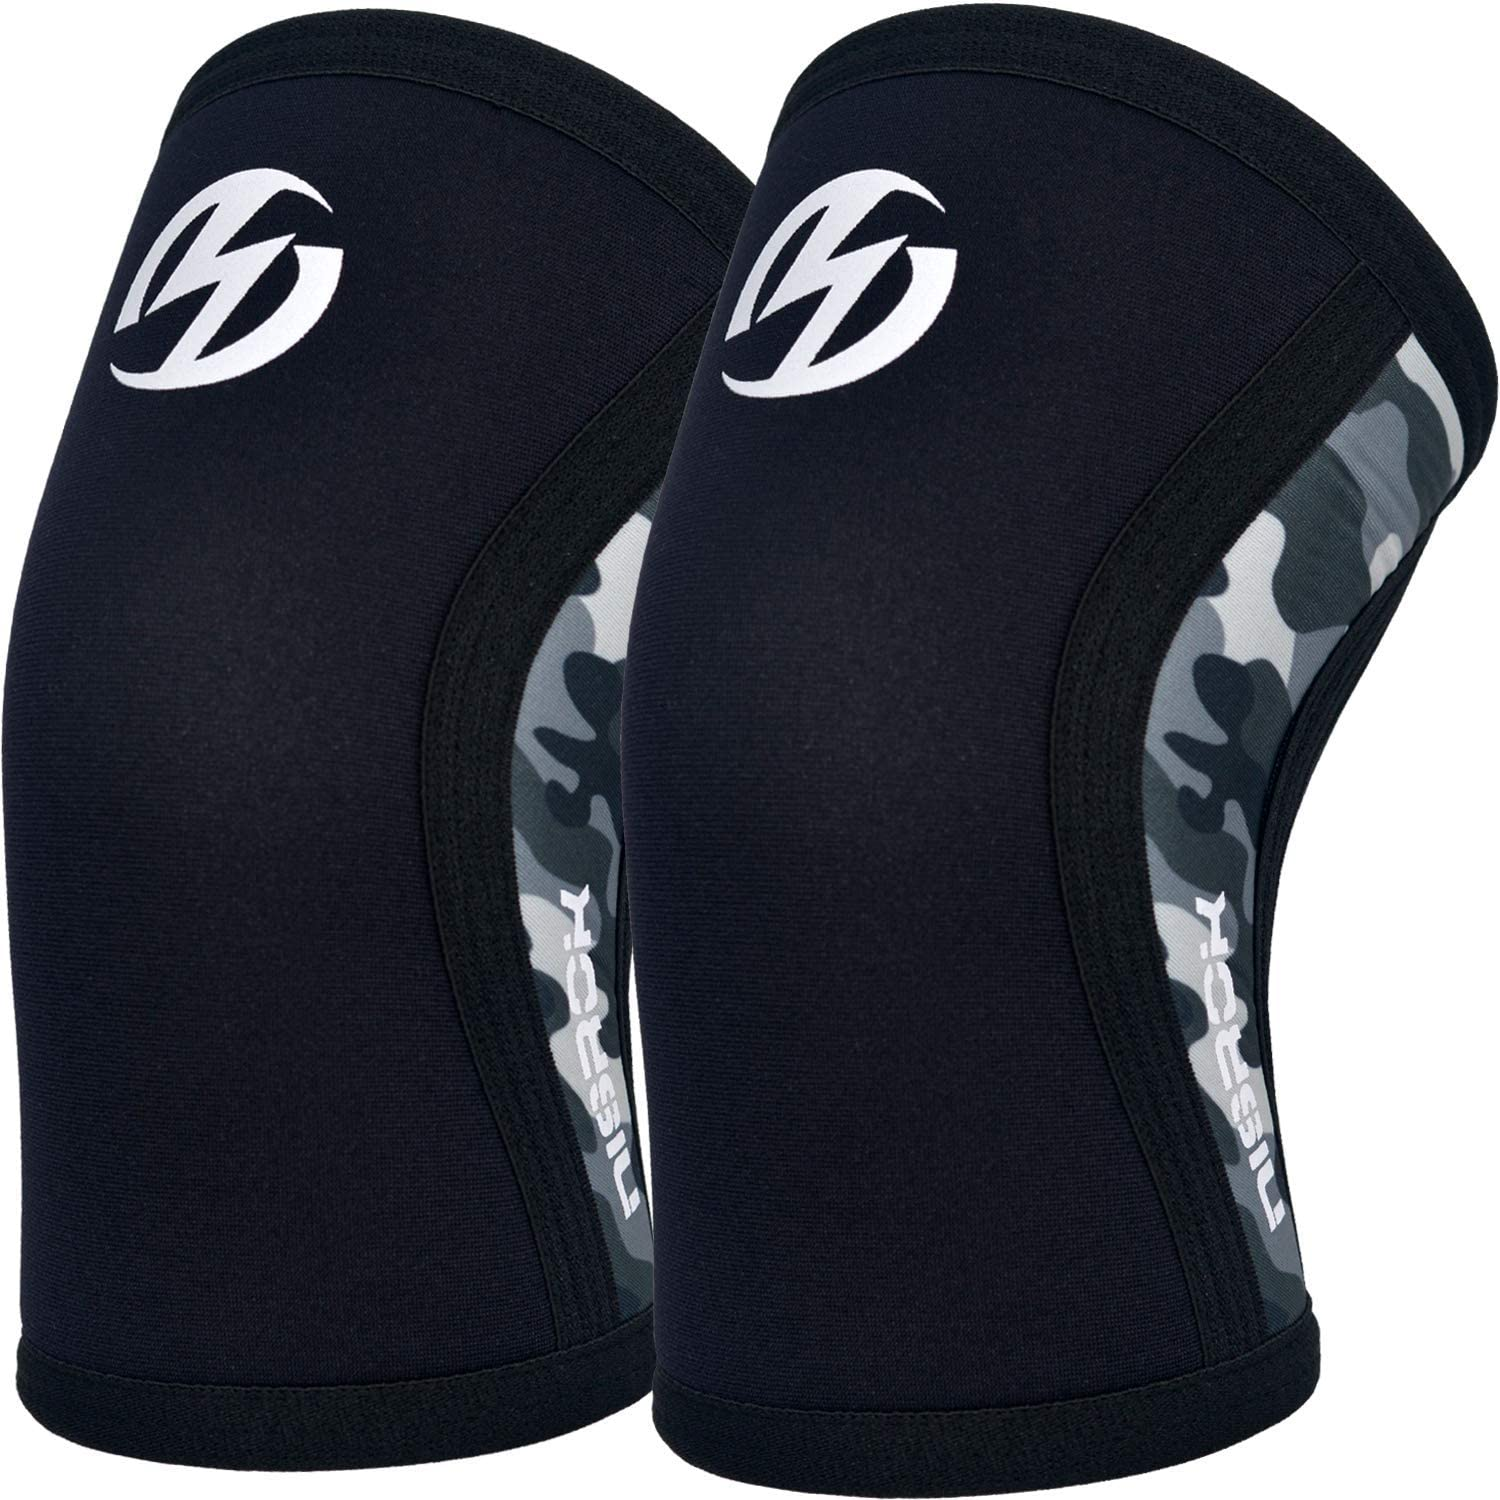 2Pcs 5MM Neoprene Elbow Support Elbow Sleeves Guard Basketball Weightlifting